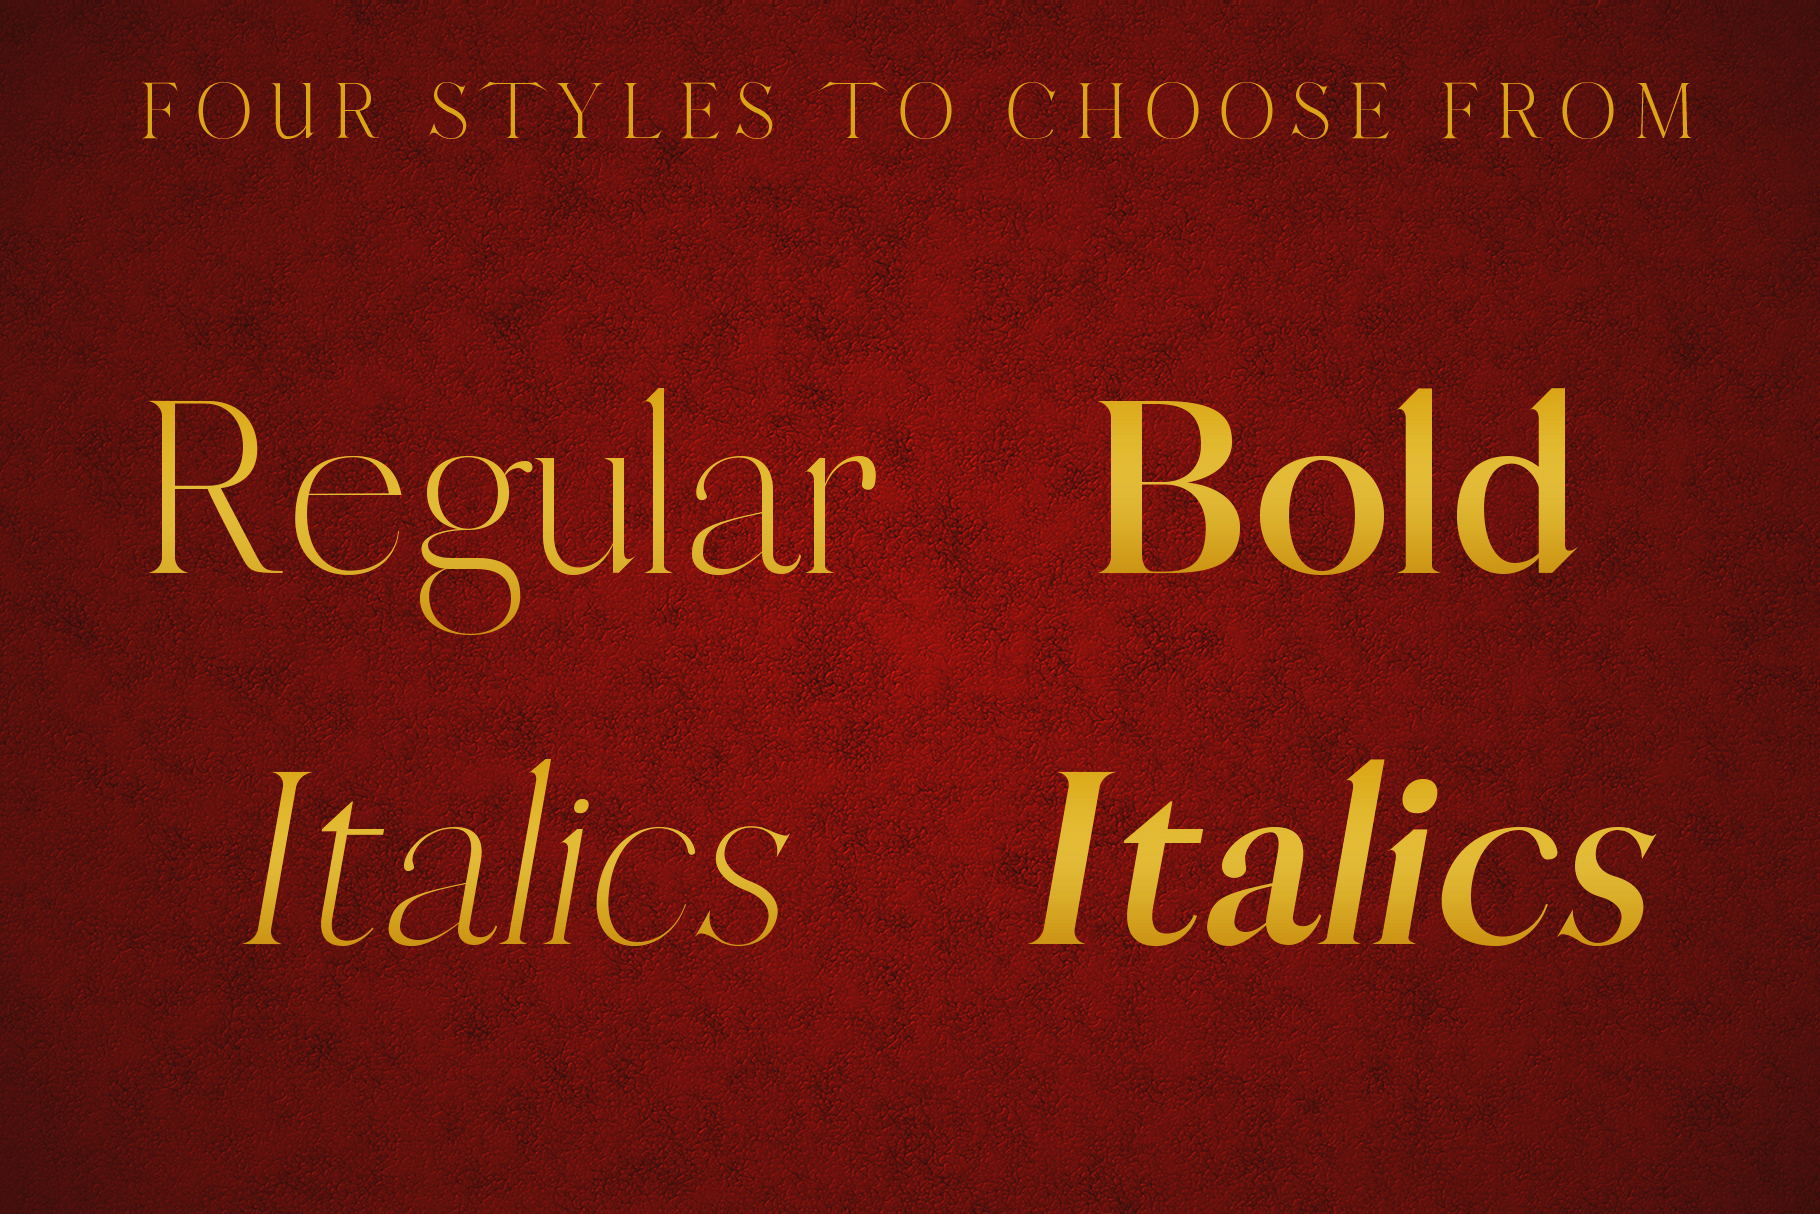 VOGUE - An Elegant Typeface example image 3